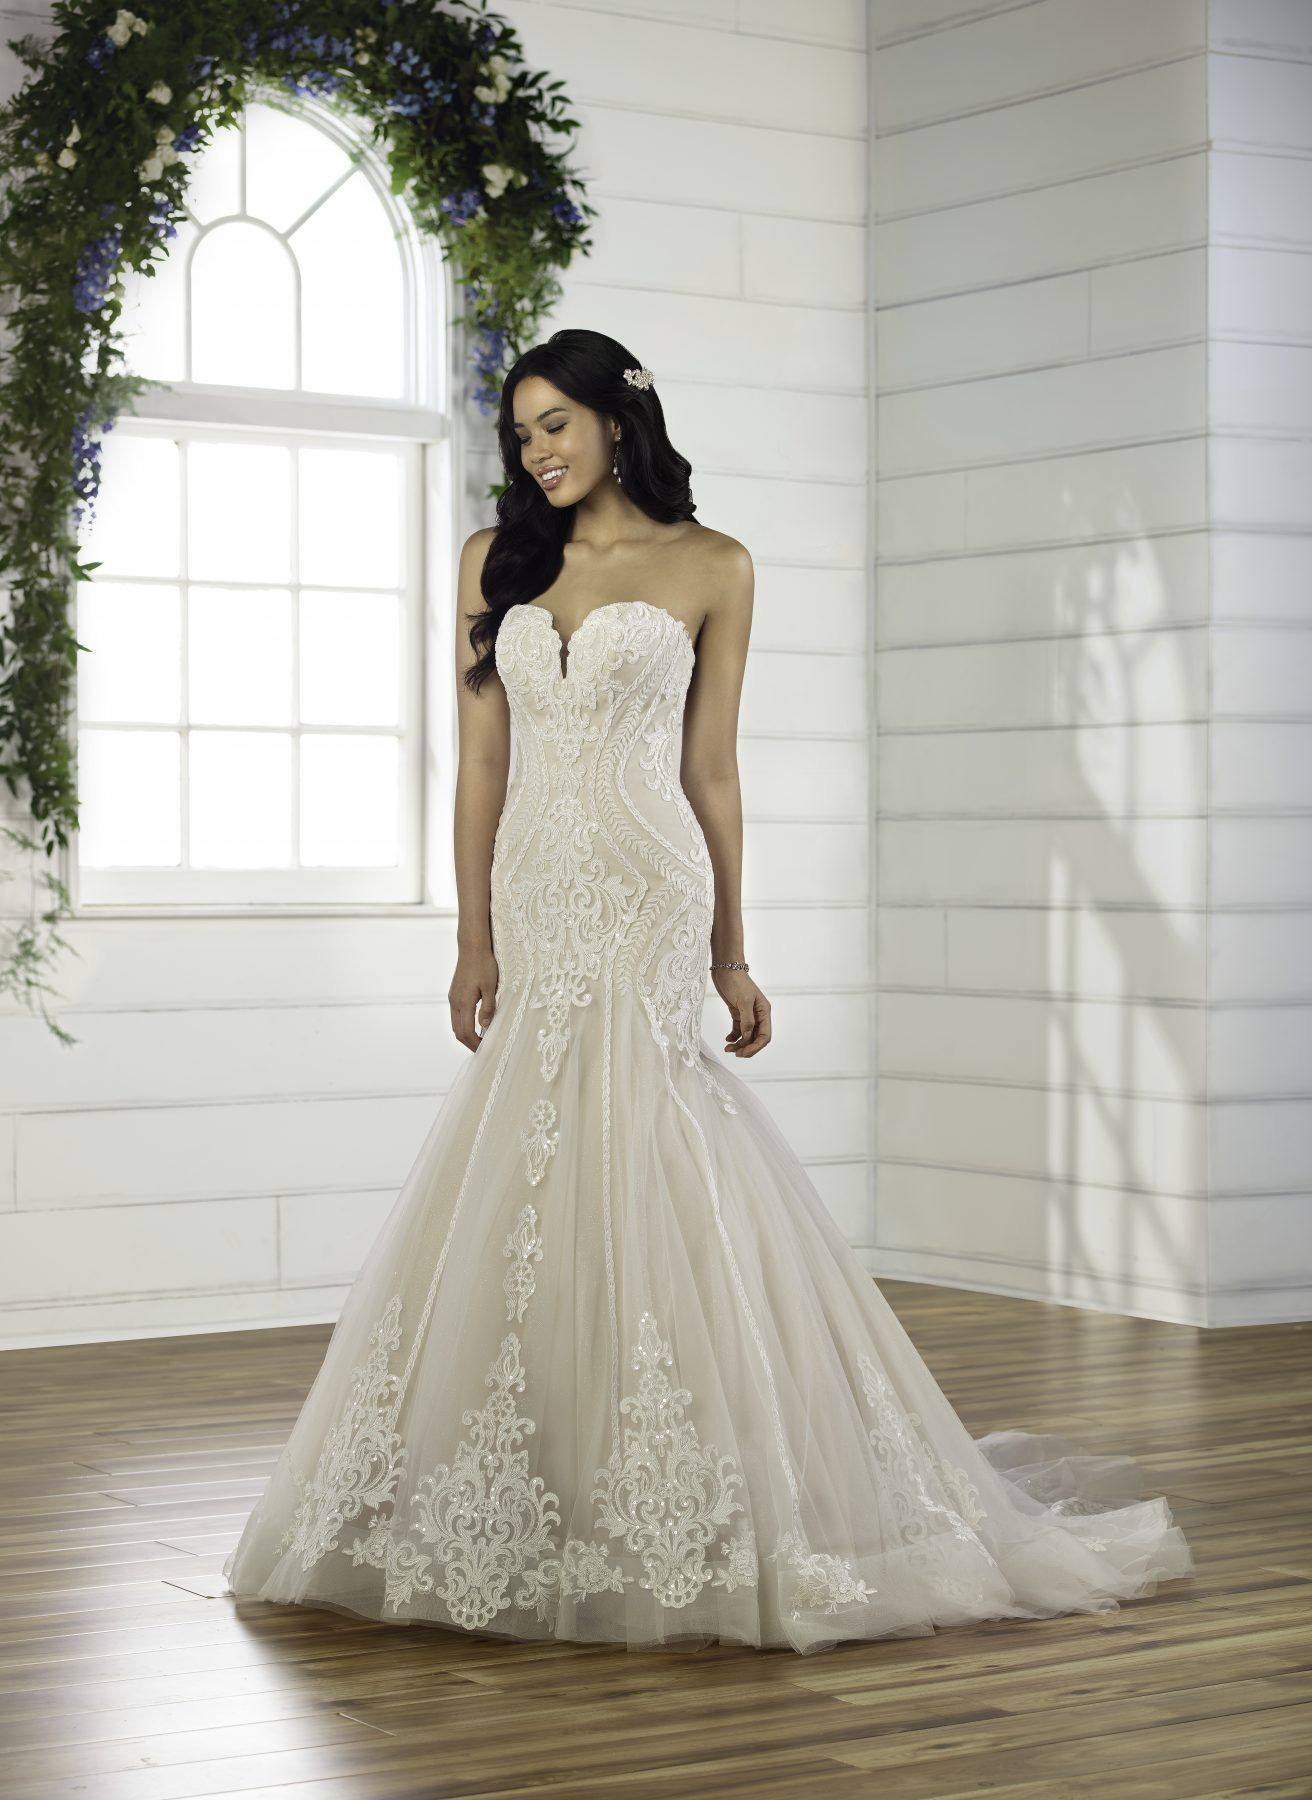 Strapless Sweetheart Neckline Fit And Flare Wedding Dress With Lace Details And Beading Kleinfeld Bridal In 2021 Fit And Flare Wedding Dress Wedding Dresses Kleinfeld Wedding Dresses [ 1800 x 1312 Pixel ]